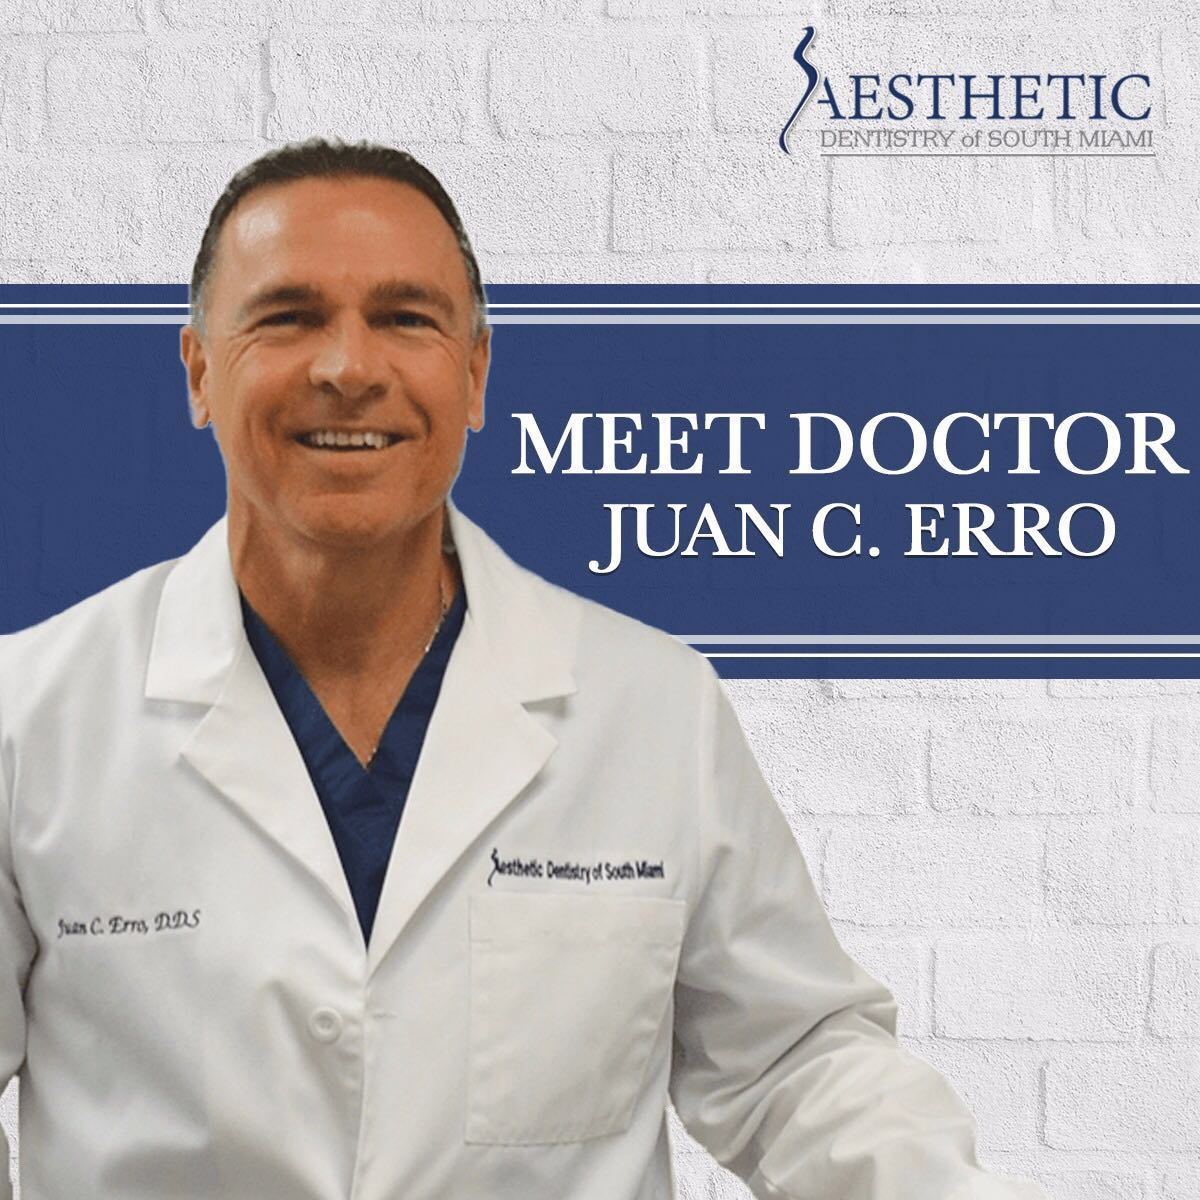 Aesthetic Dentistry of South Miami image 1